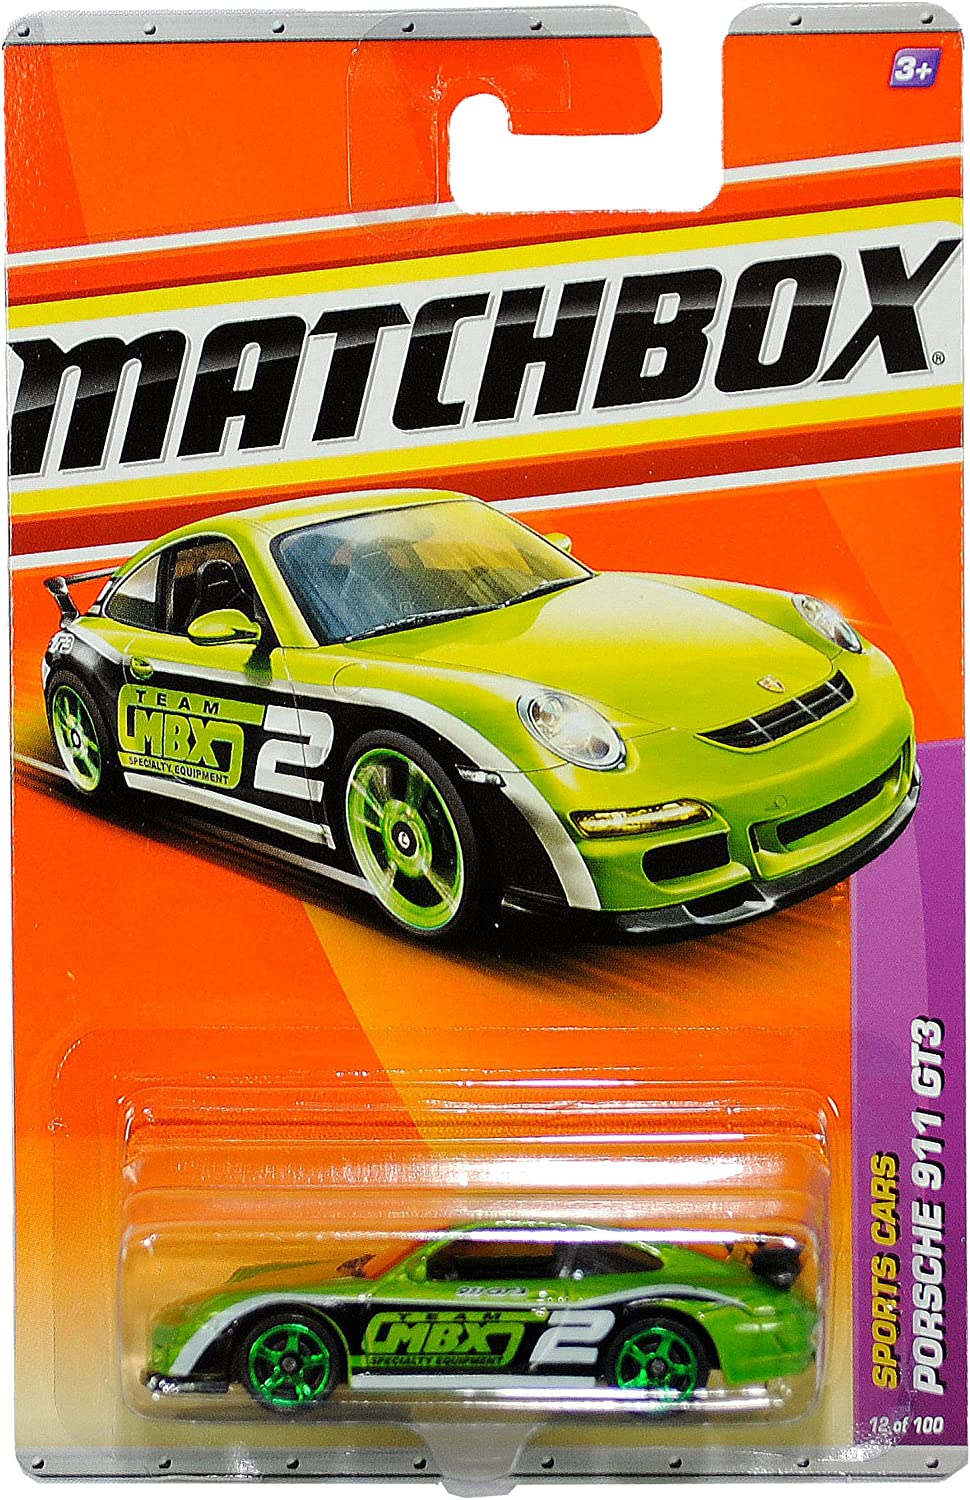 Remote Control and Off-Road Vehicle 1 24 2.4G Electric 4WD Remote Control Drift Rally car RTR Remote Control Toy Gift